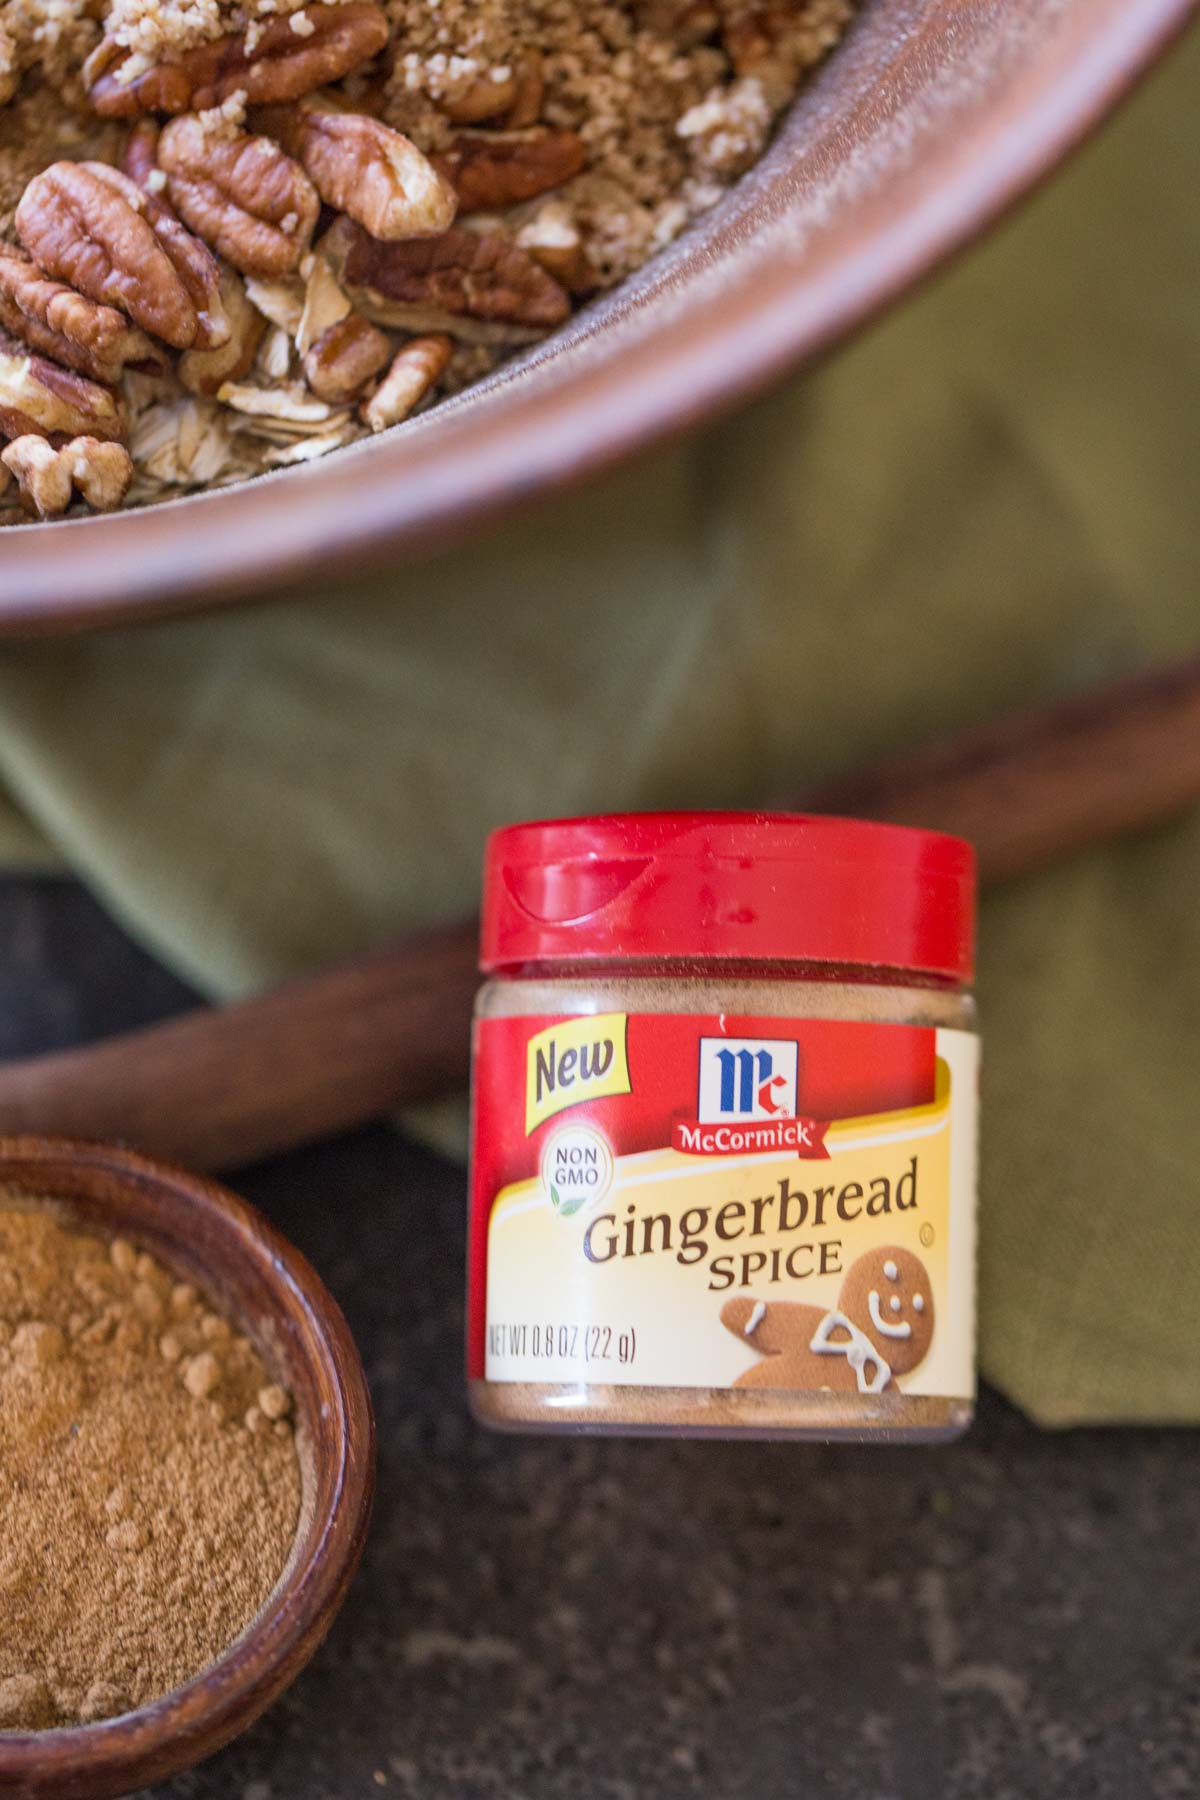 A container of McCormick Gingerbread Spice mix, sitting next to a small wood bowl of the spice mix and a large bowl of the Gingerbread Spice Granola ingredients.